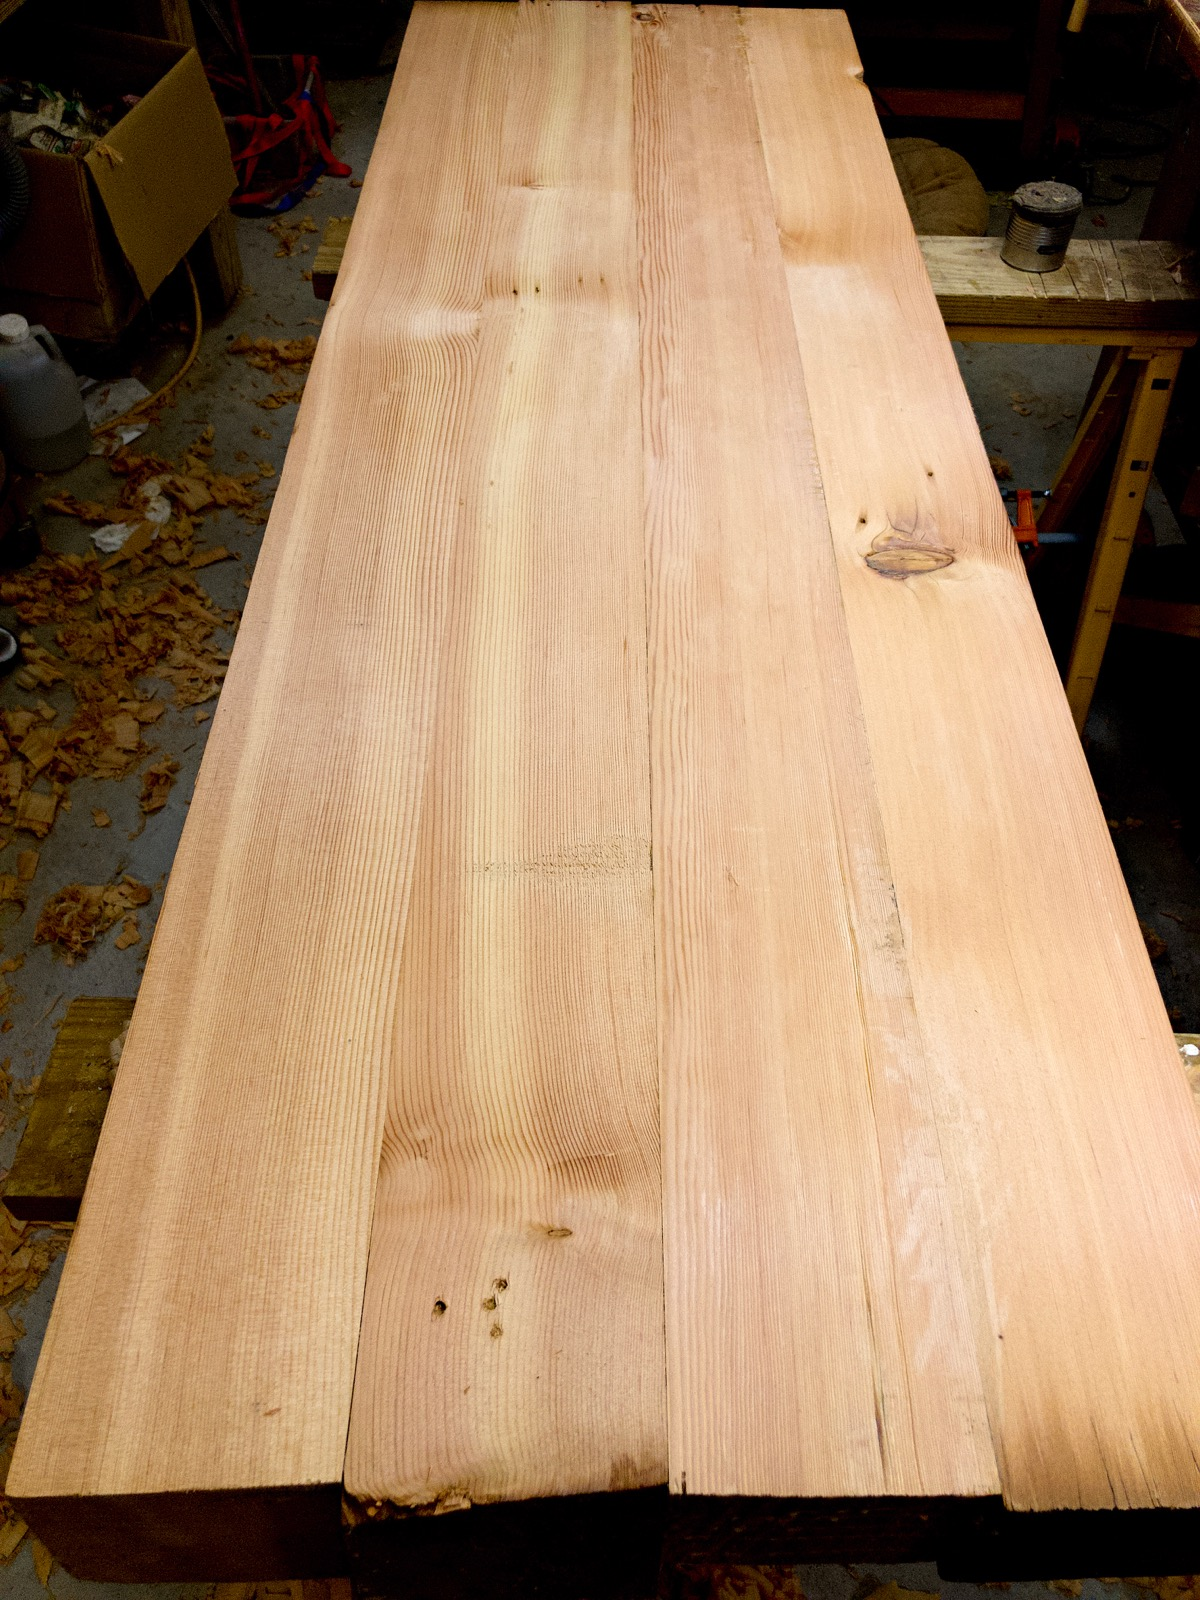 The top of the bench after being glued together.